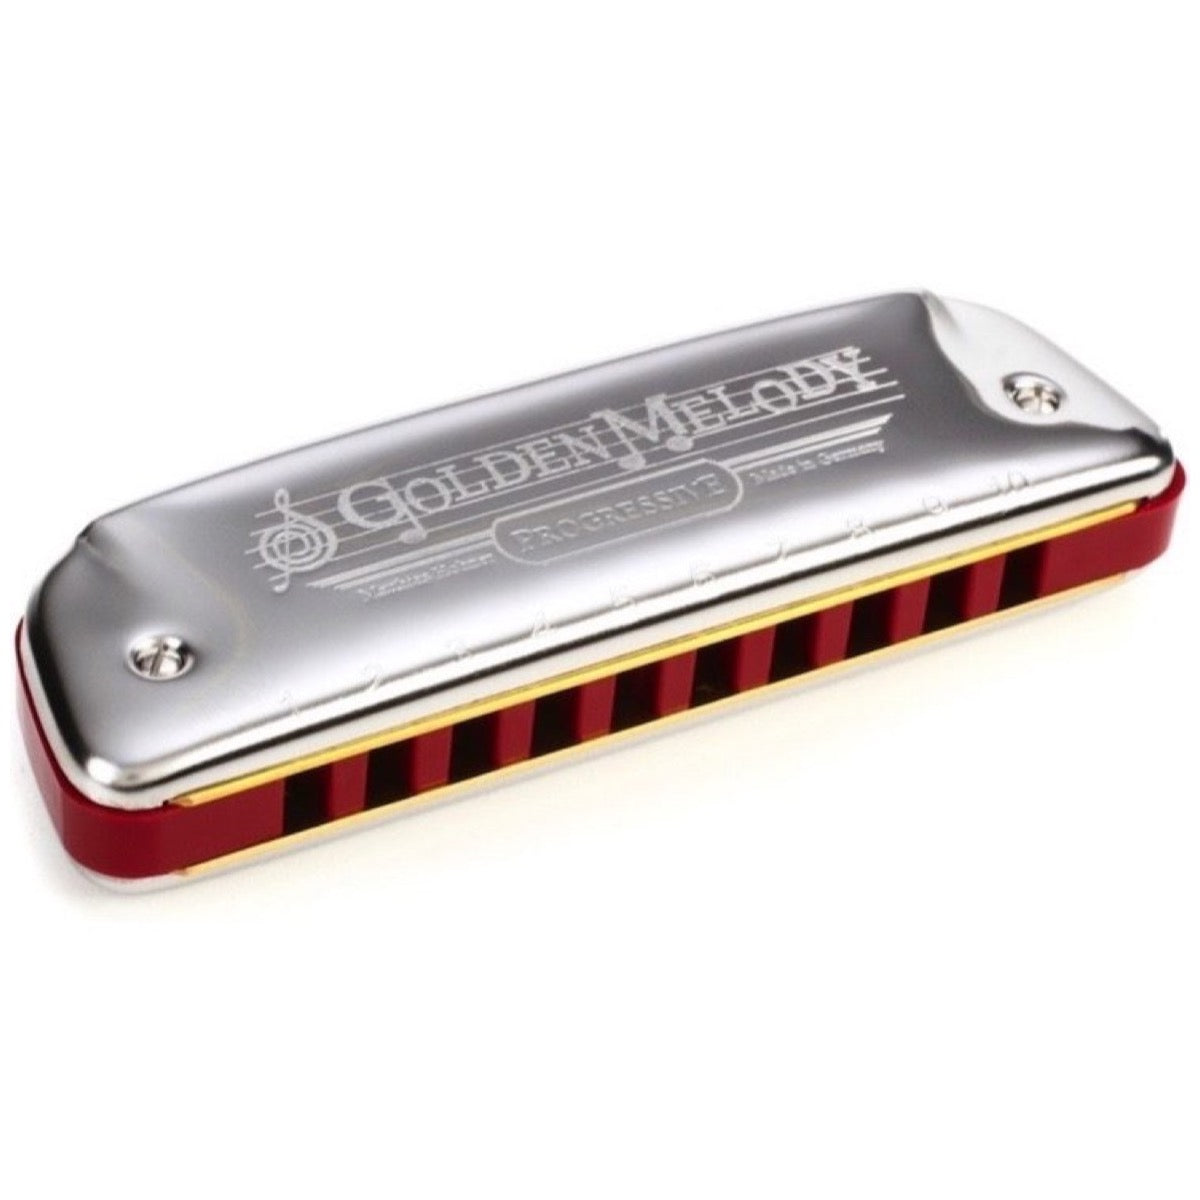 Hohner Golden Melody Diatonic Harmonica, 542PBX-C, Key of C